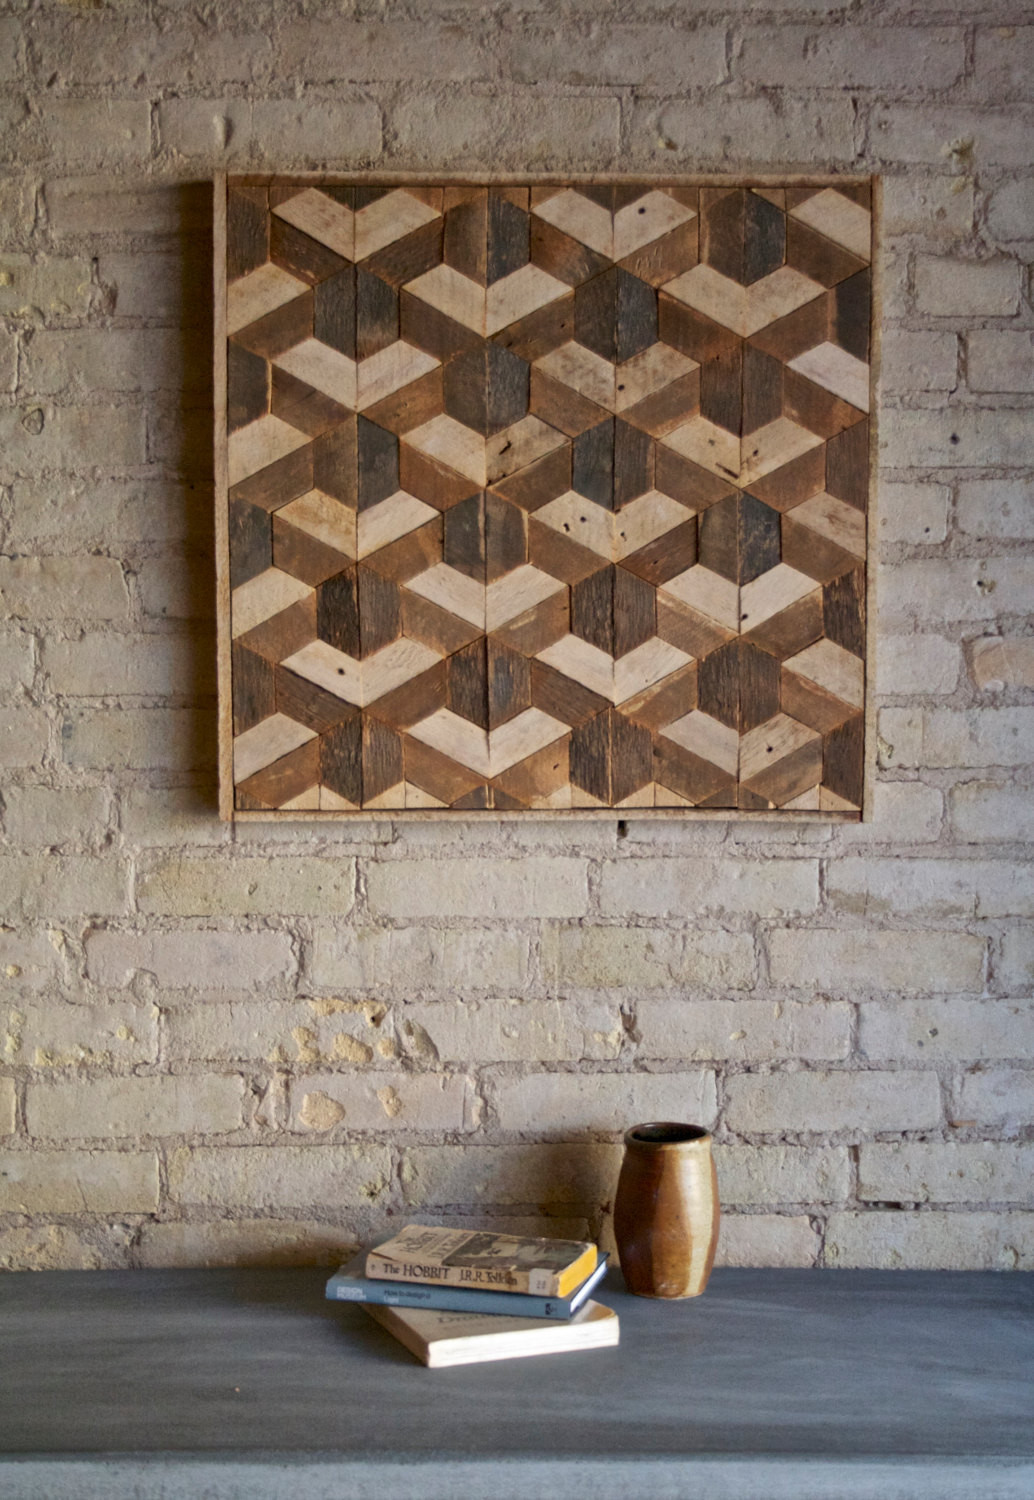 Best ideas about Wooden Wall Art . Save or Pin Reclaimed Wood Wall Art Decor Lath Pattern Geometric Now.